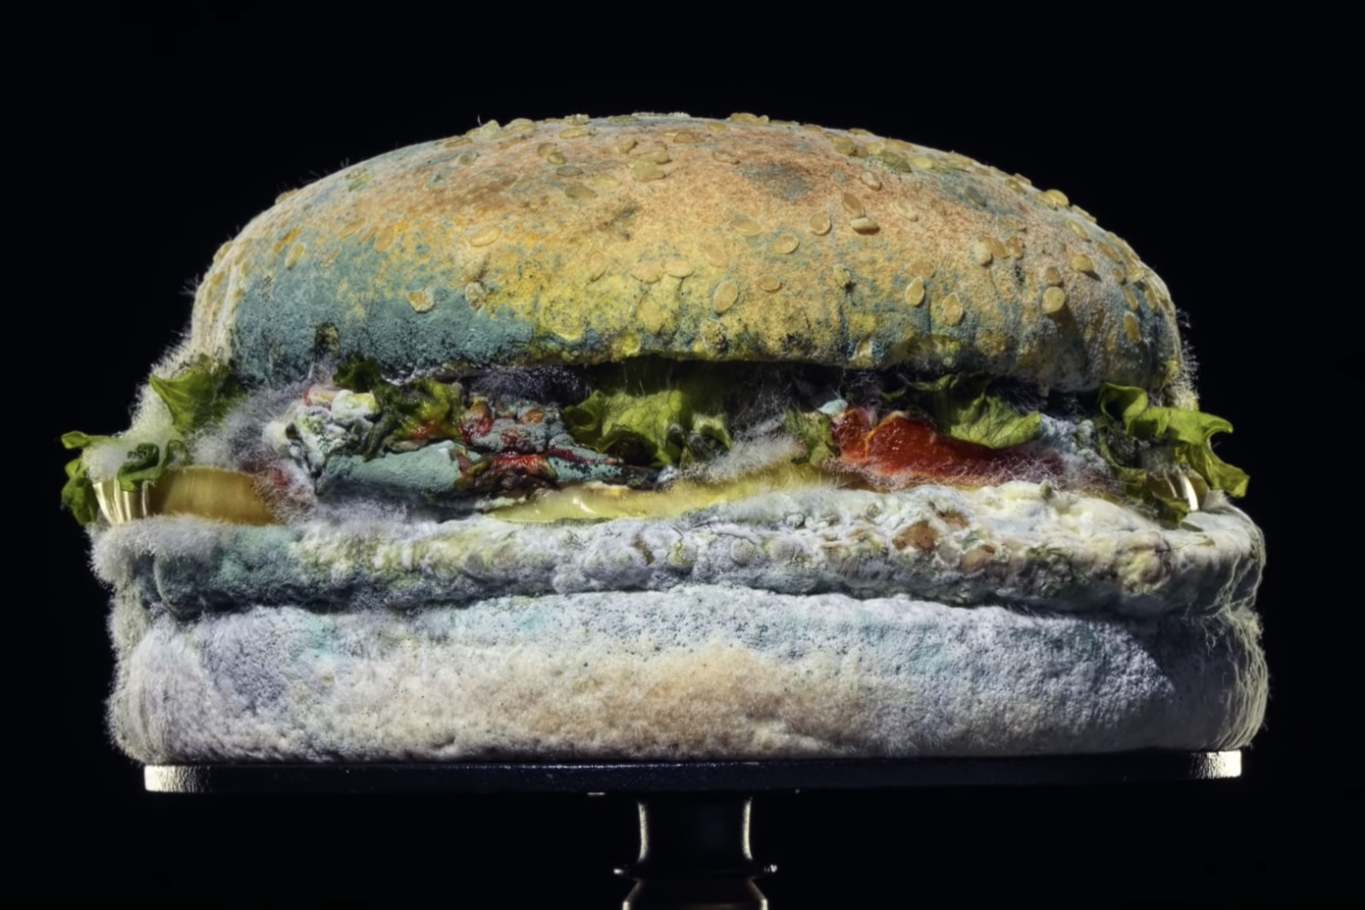 Burger King unveils mouldy whopper in bizarre new ad